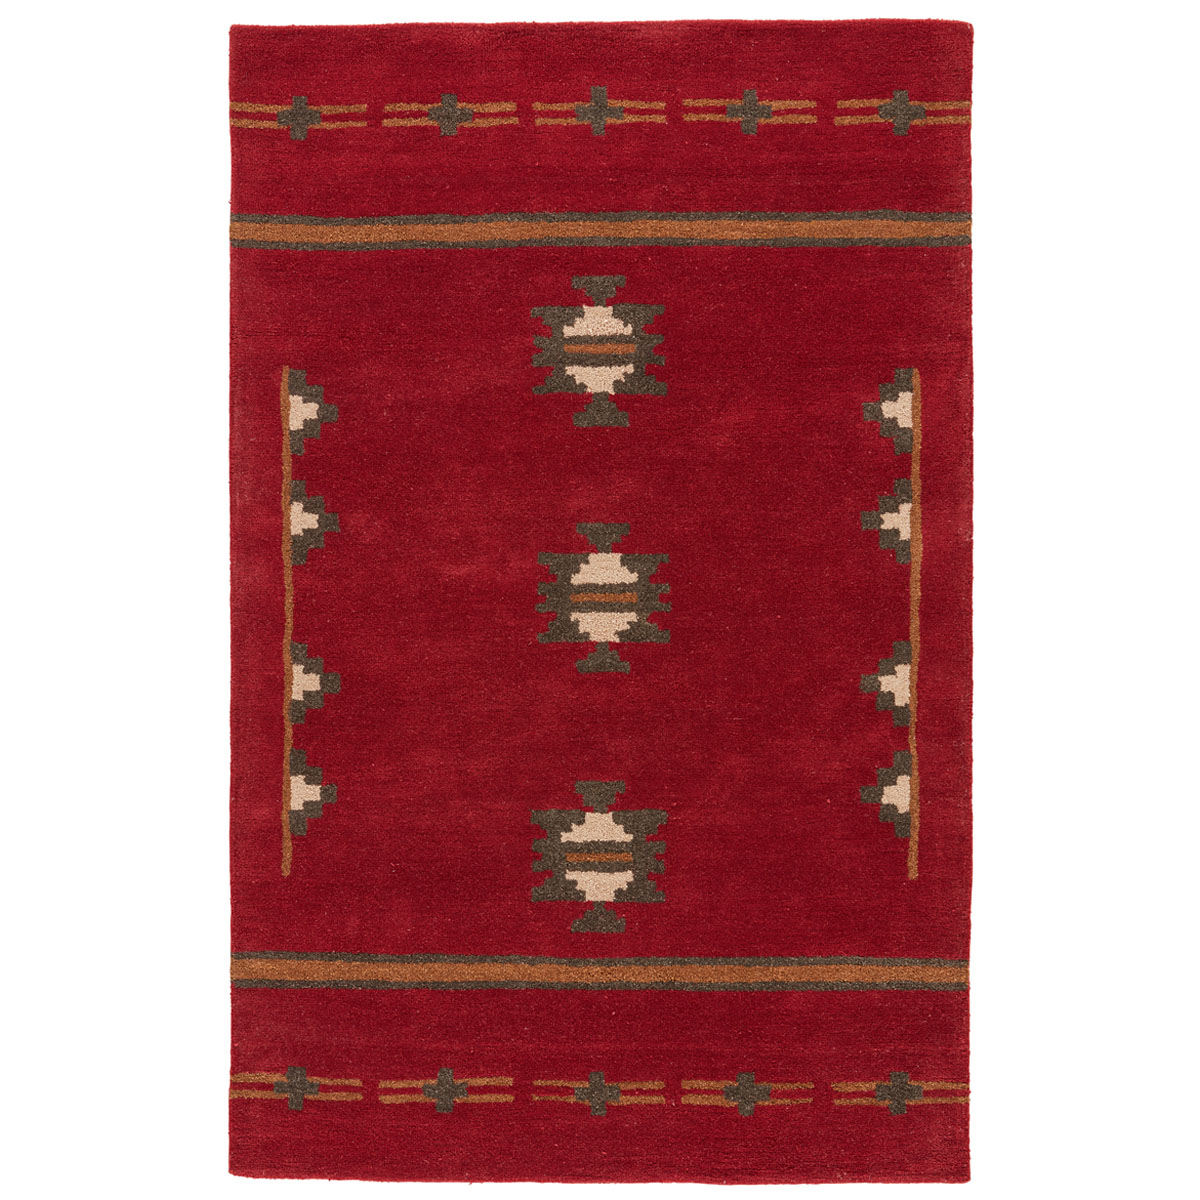 Crimson Cross Rug - 8 x 10